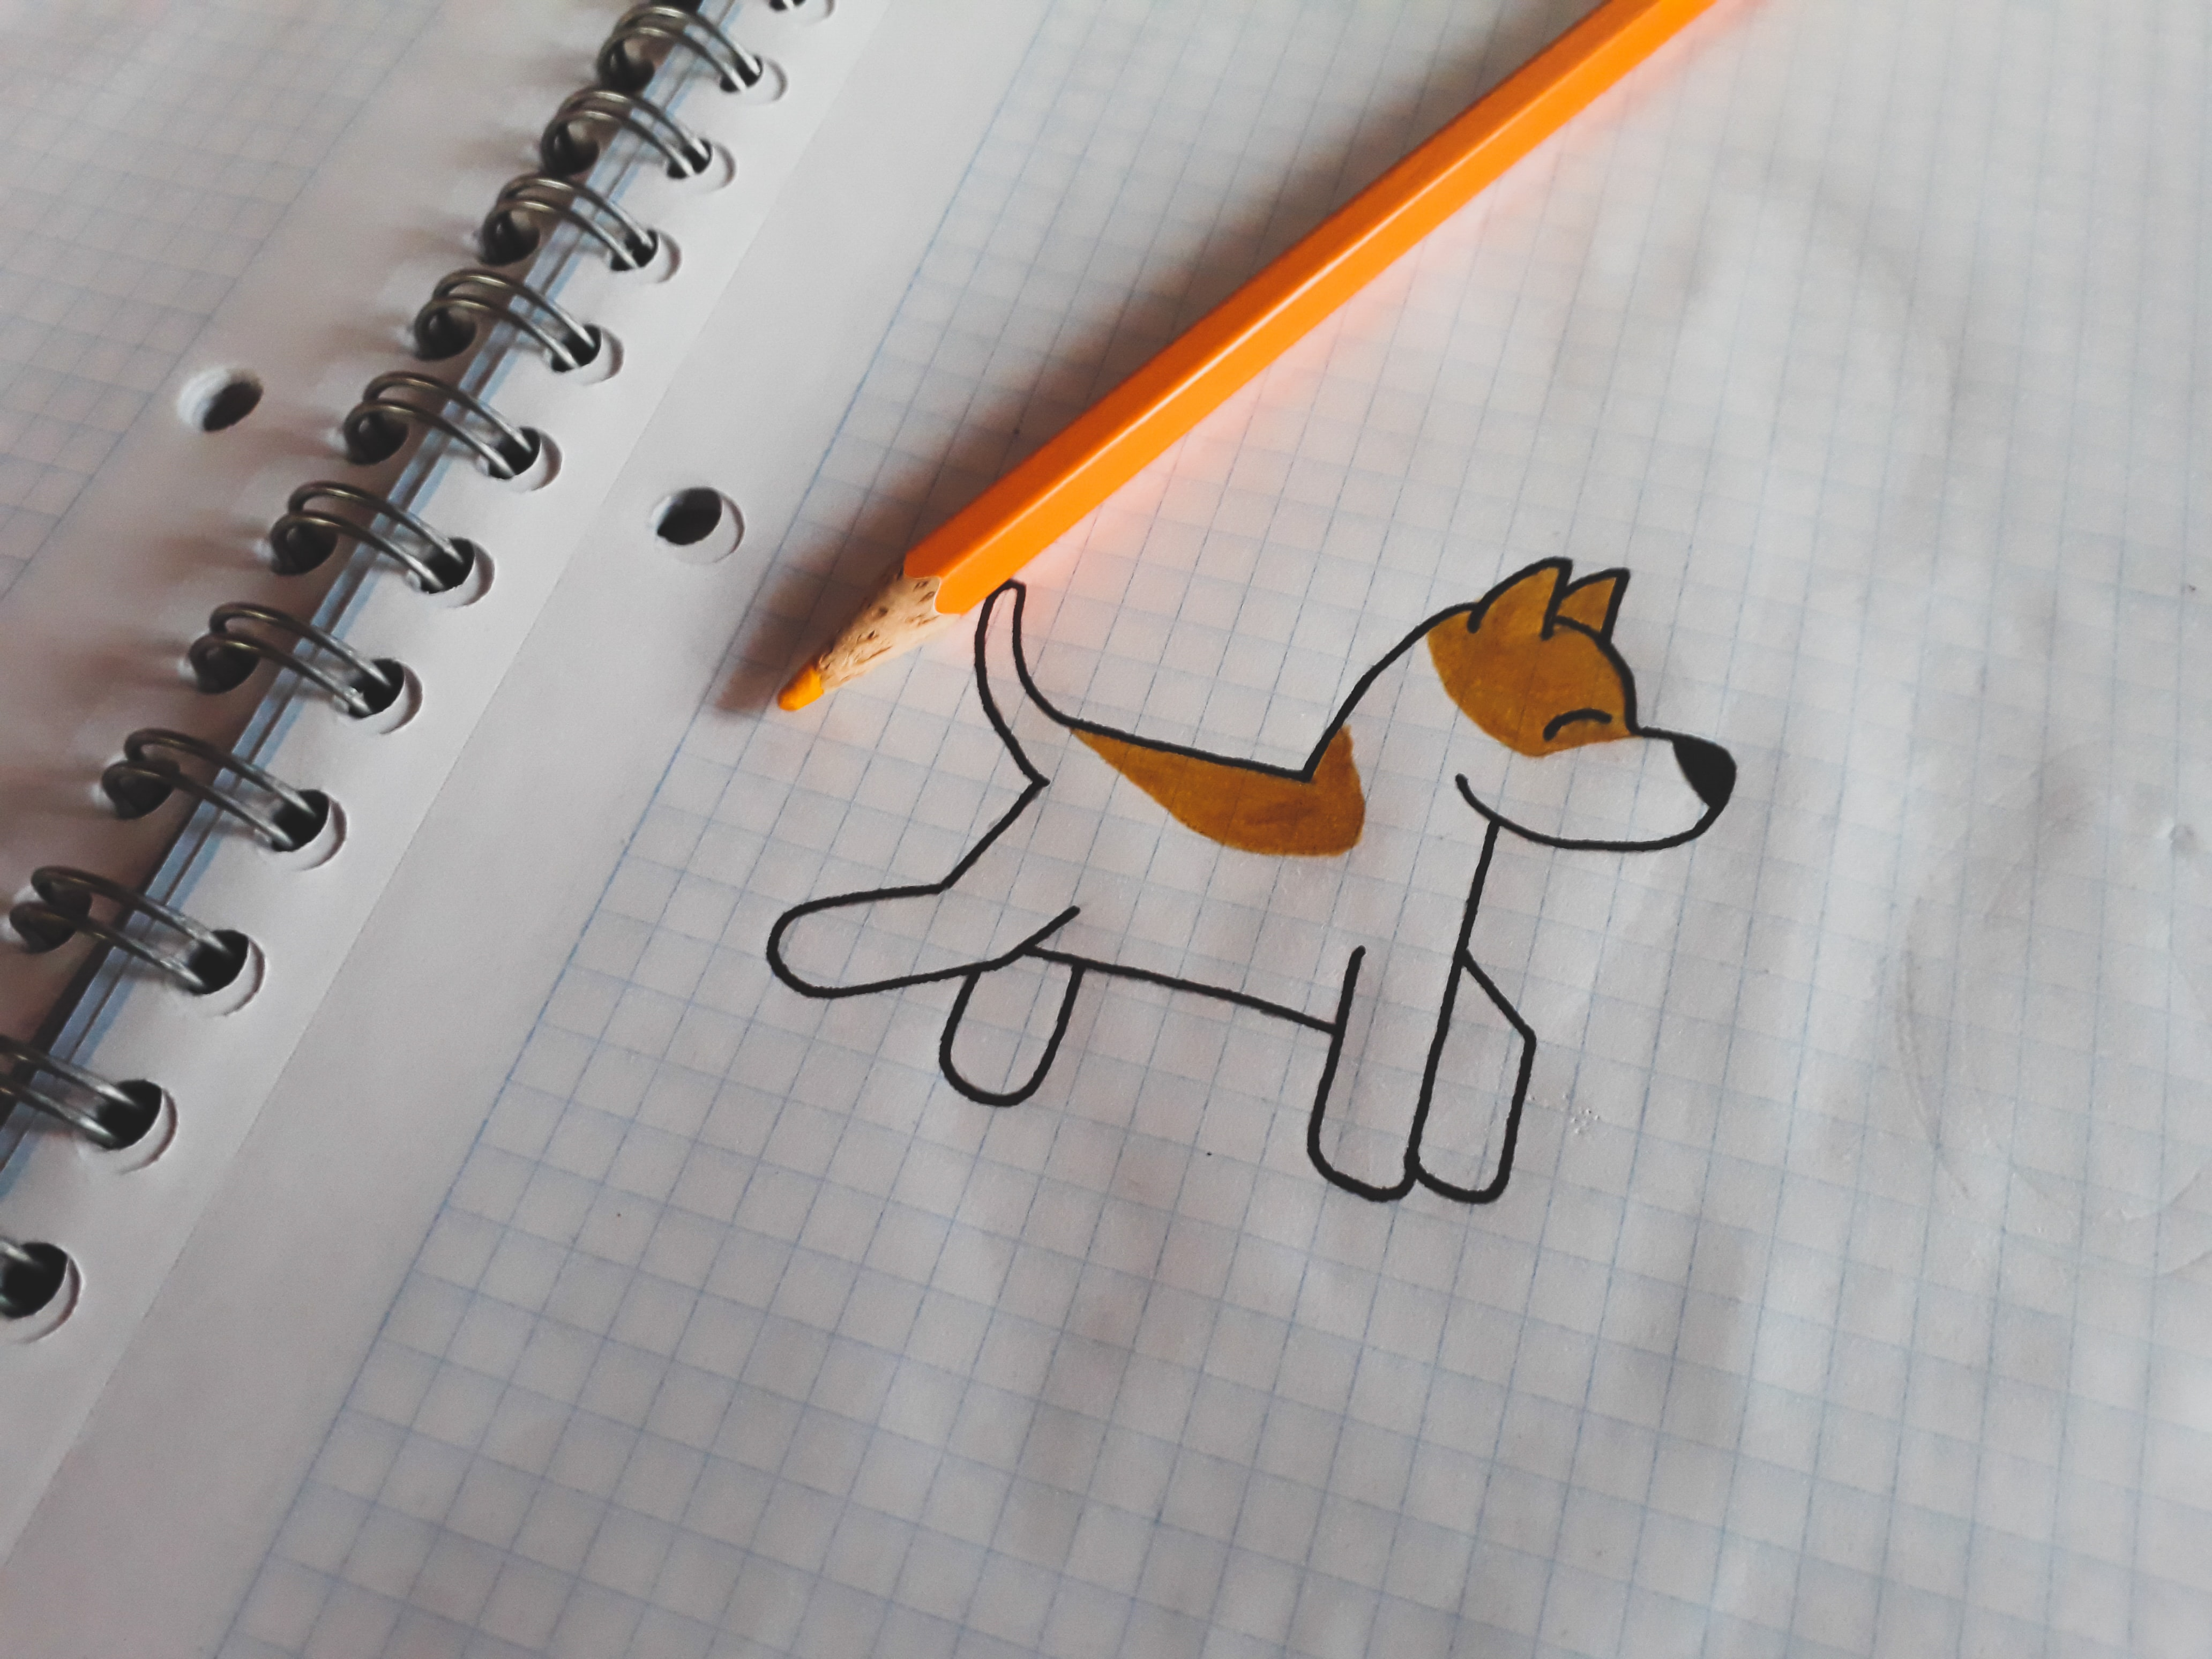 Drawing a dog on graph paper.